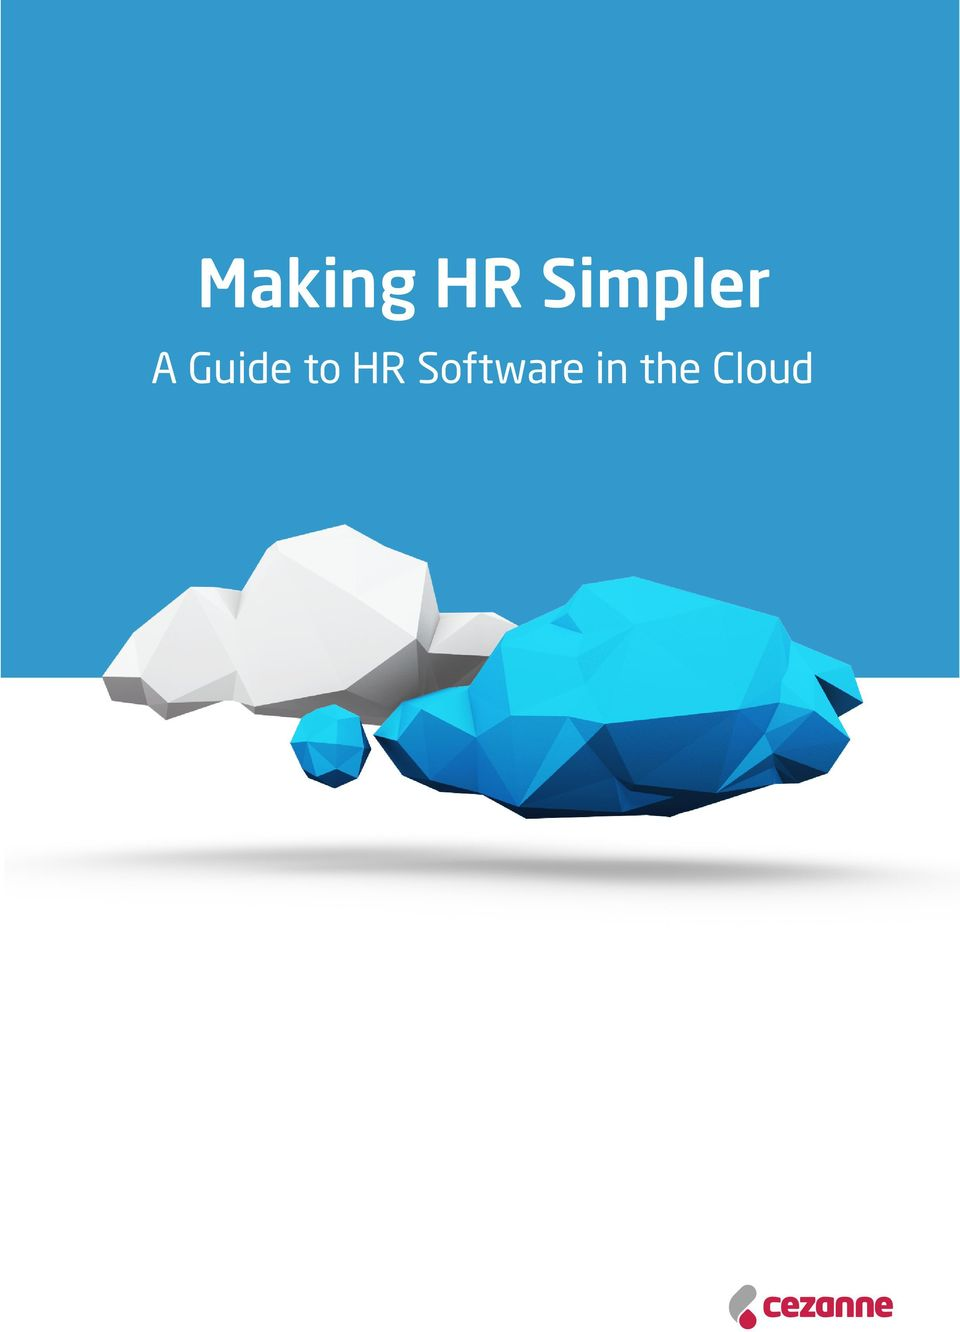 Making HR Simpler  A Guide to HR Software in the Cloud - PDF